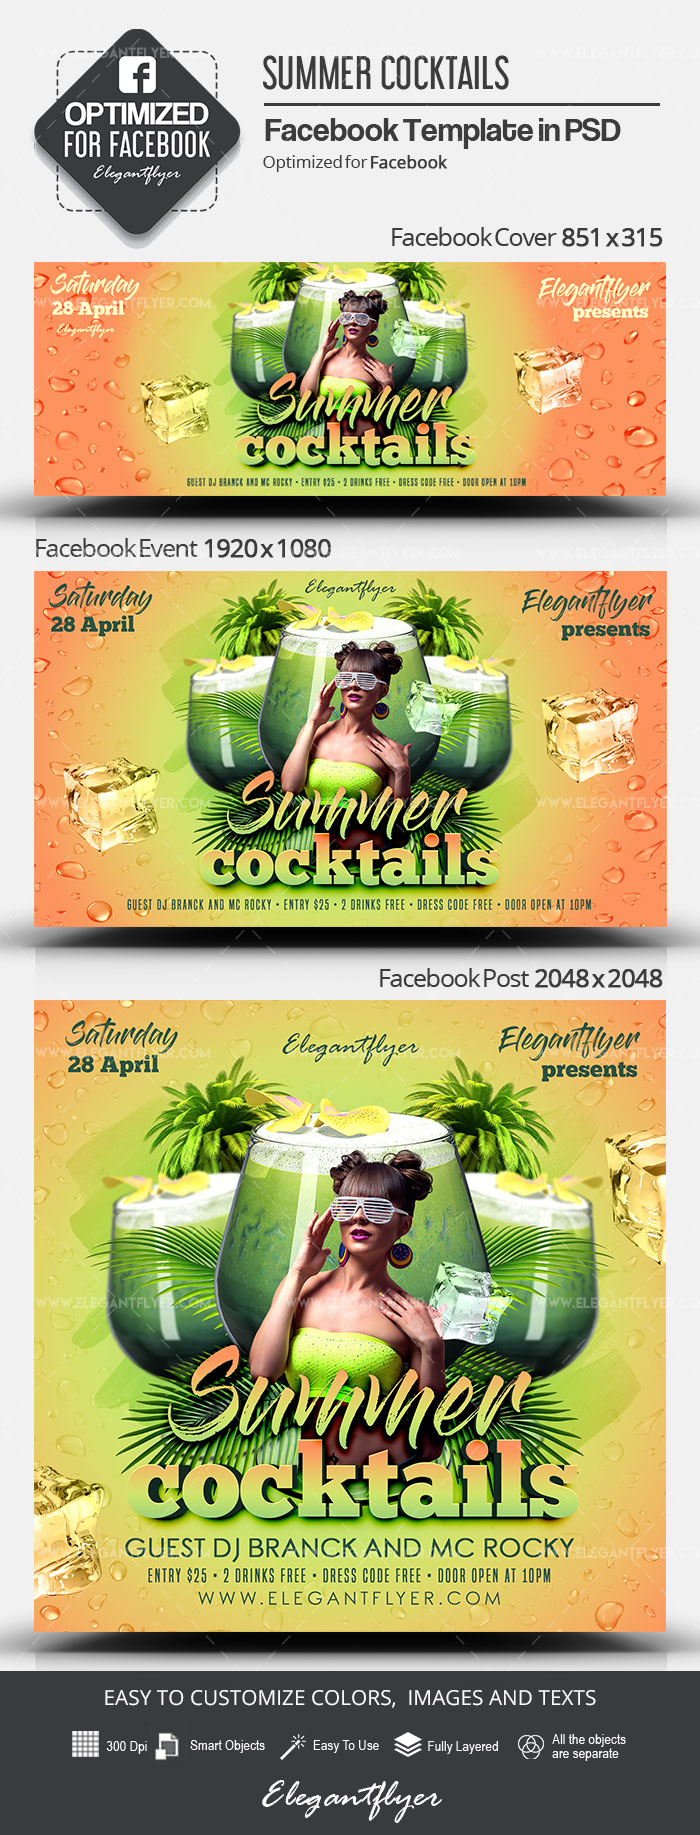 Summer Cocktails – Facebook Cover Template in PSD + Post + Event cover